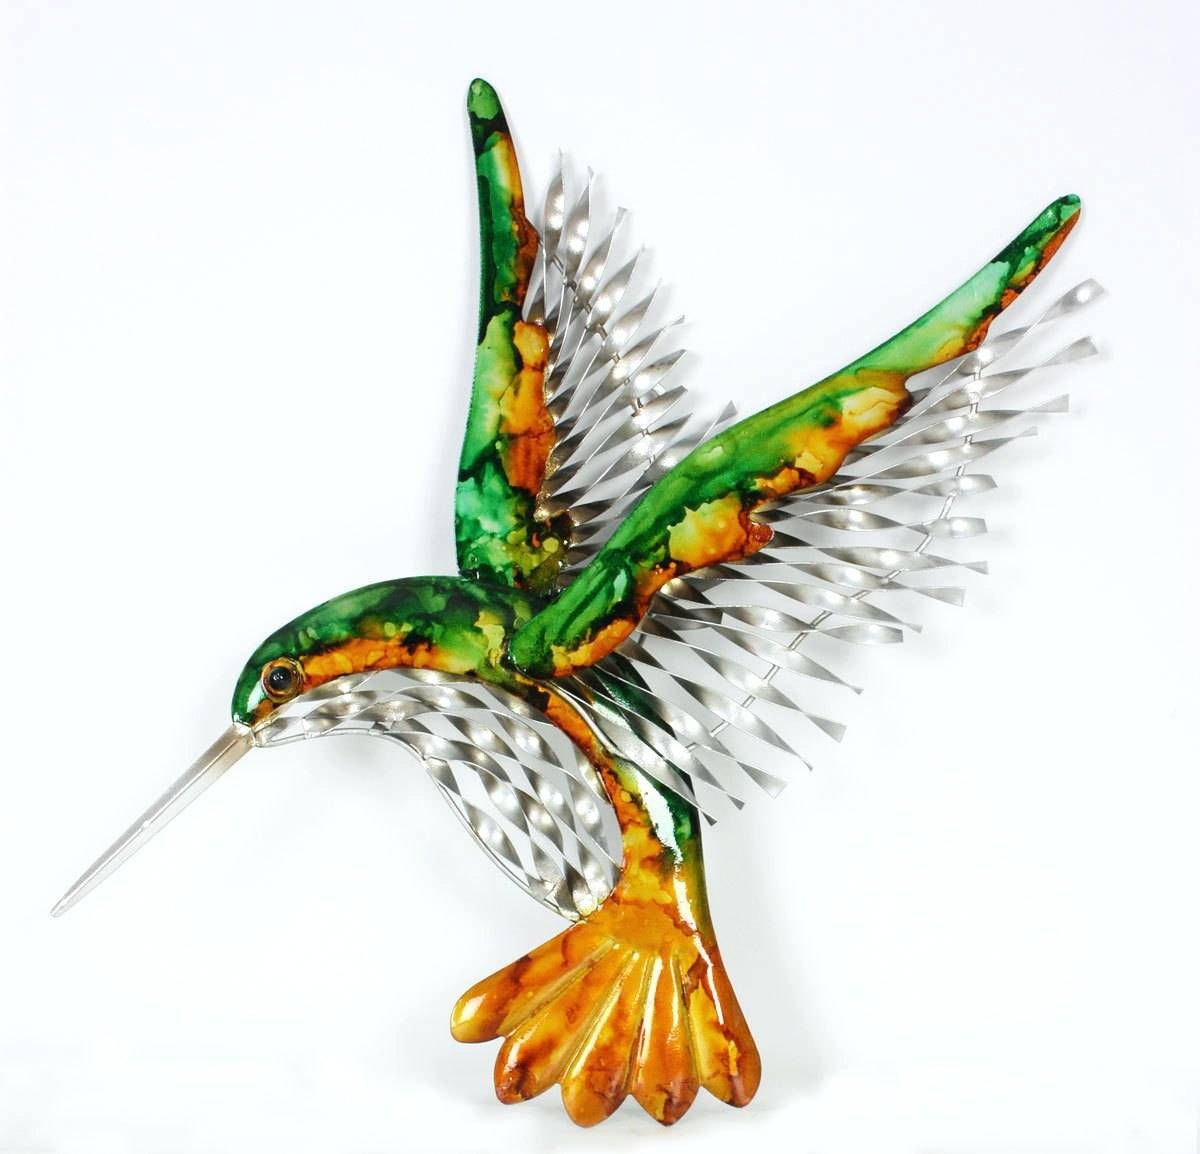 Wall Arts ~ Hummingbird Wall Art Next Hummingbird Nectar Metal For Best And Newest Hummingbird Metal Wall Art (View 16 of 20)